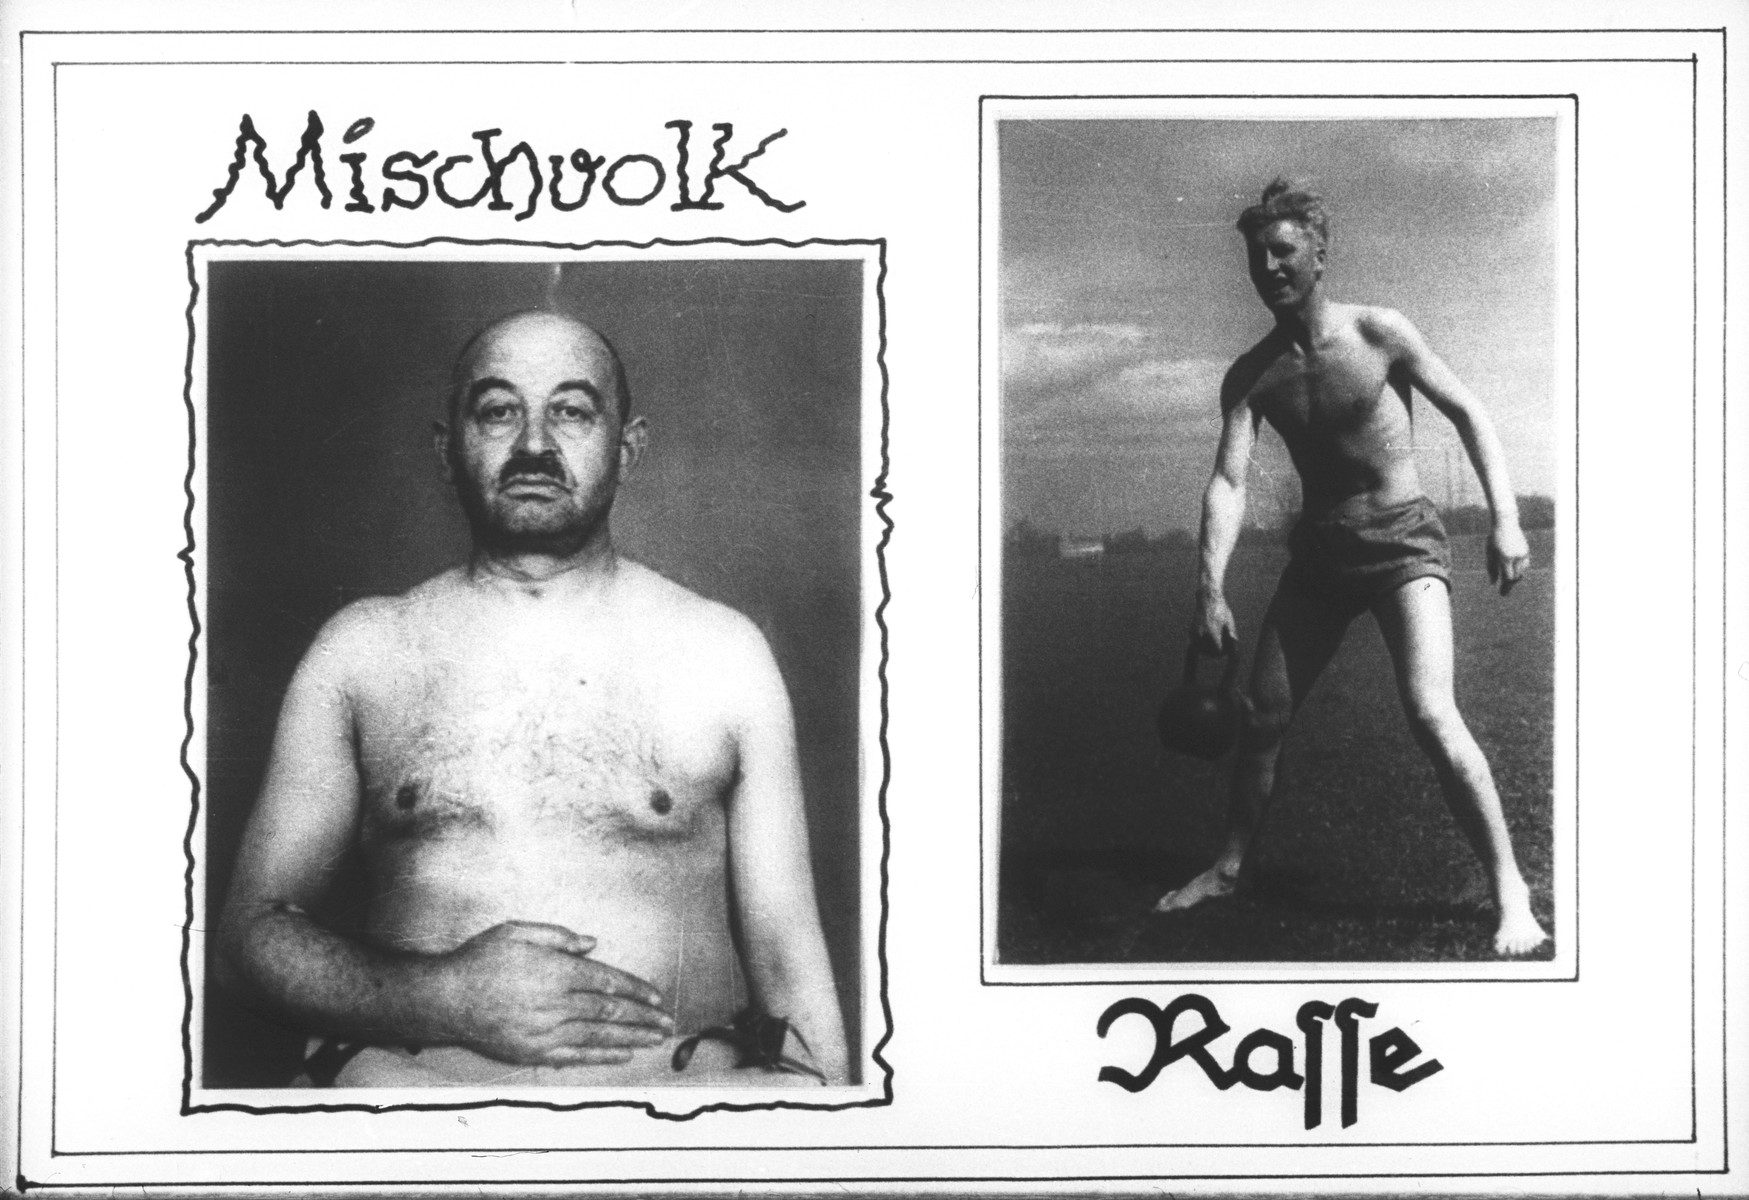 """Propaganda slide which contrasts a person of mixed race (at the left) with a healthy """"Aryan"""" youth (at the right)."""